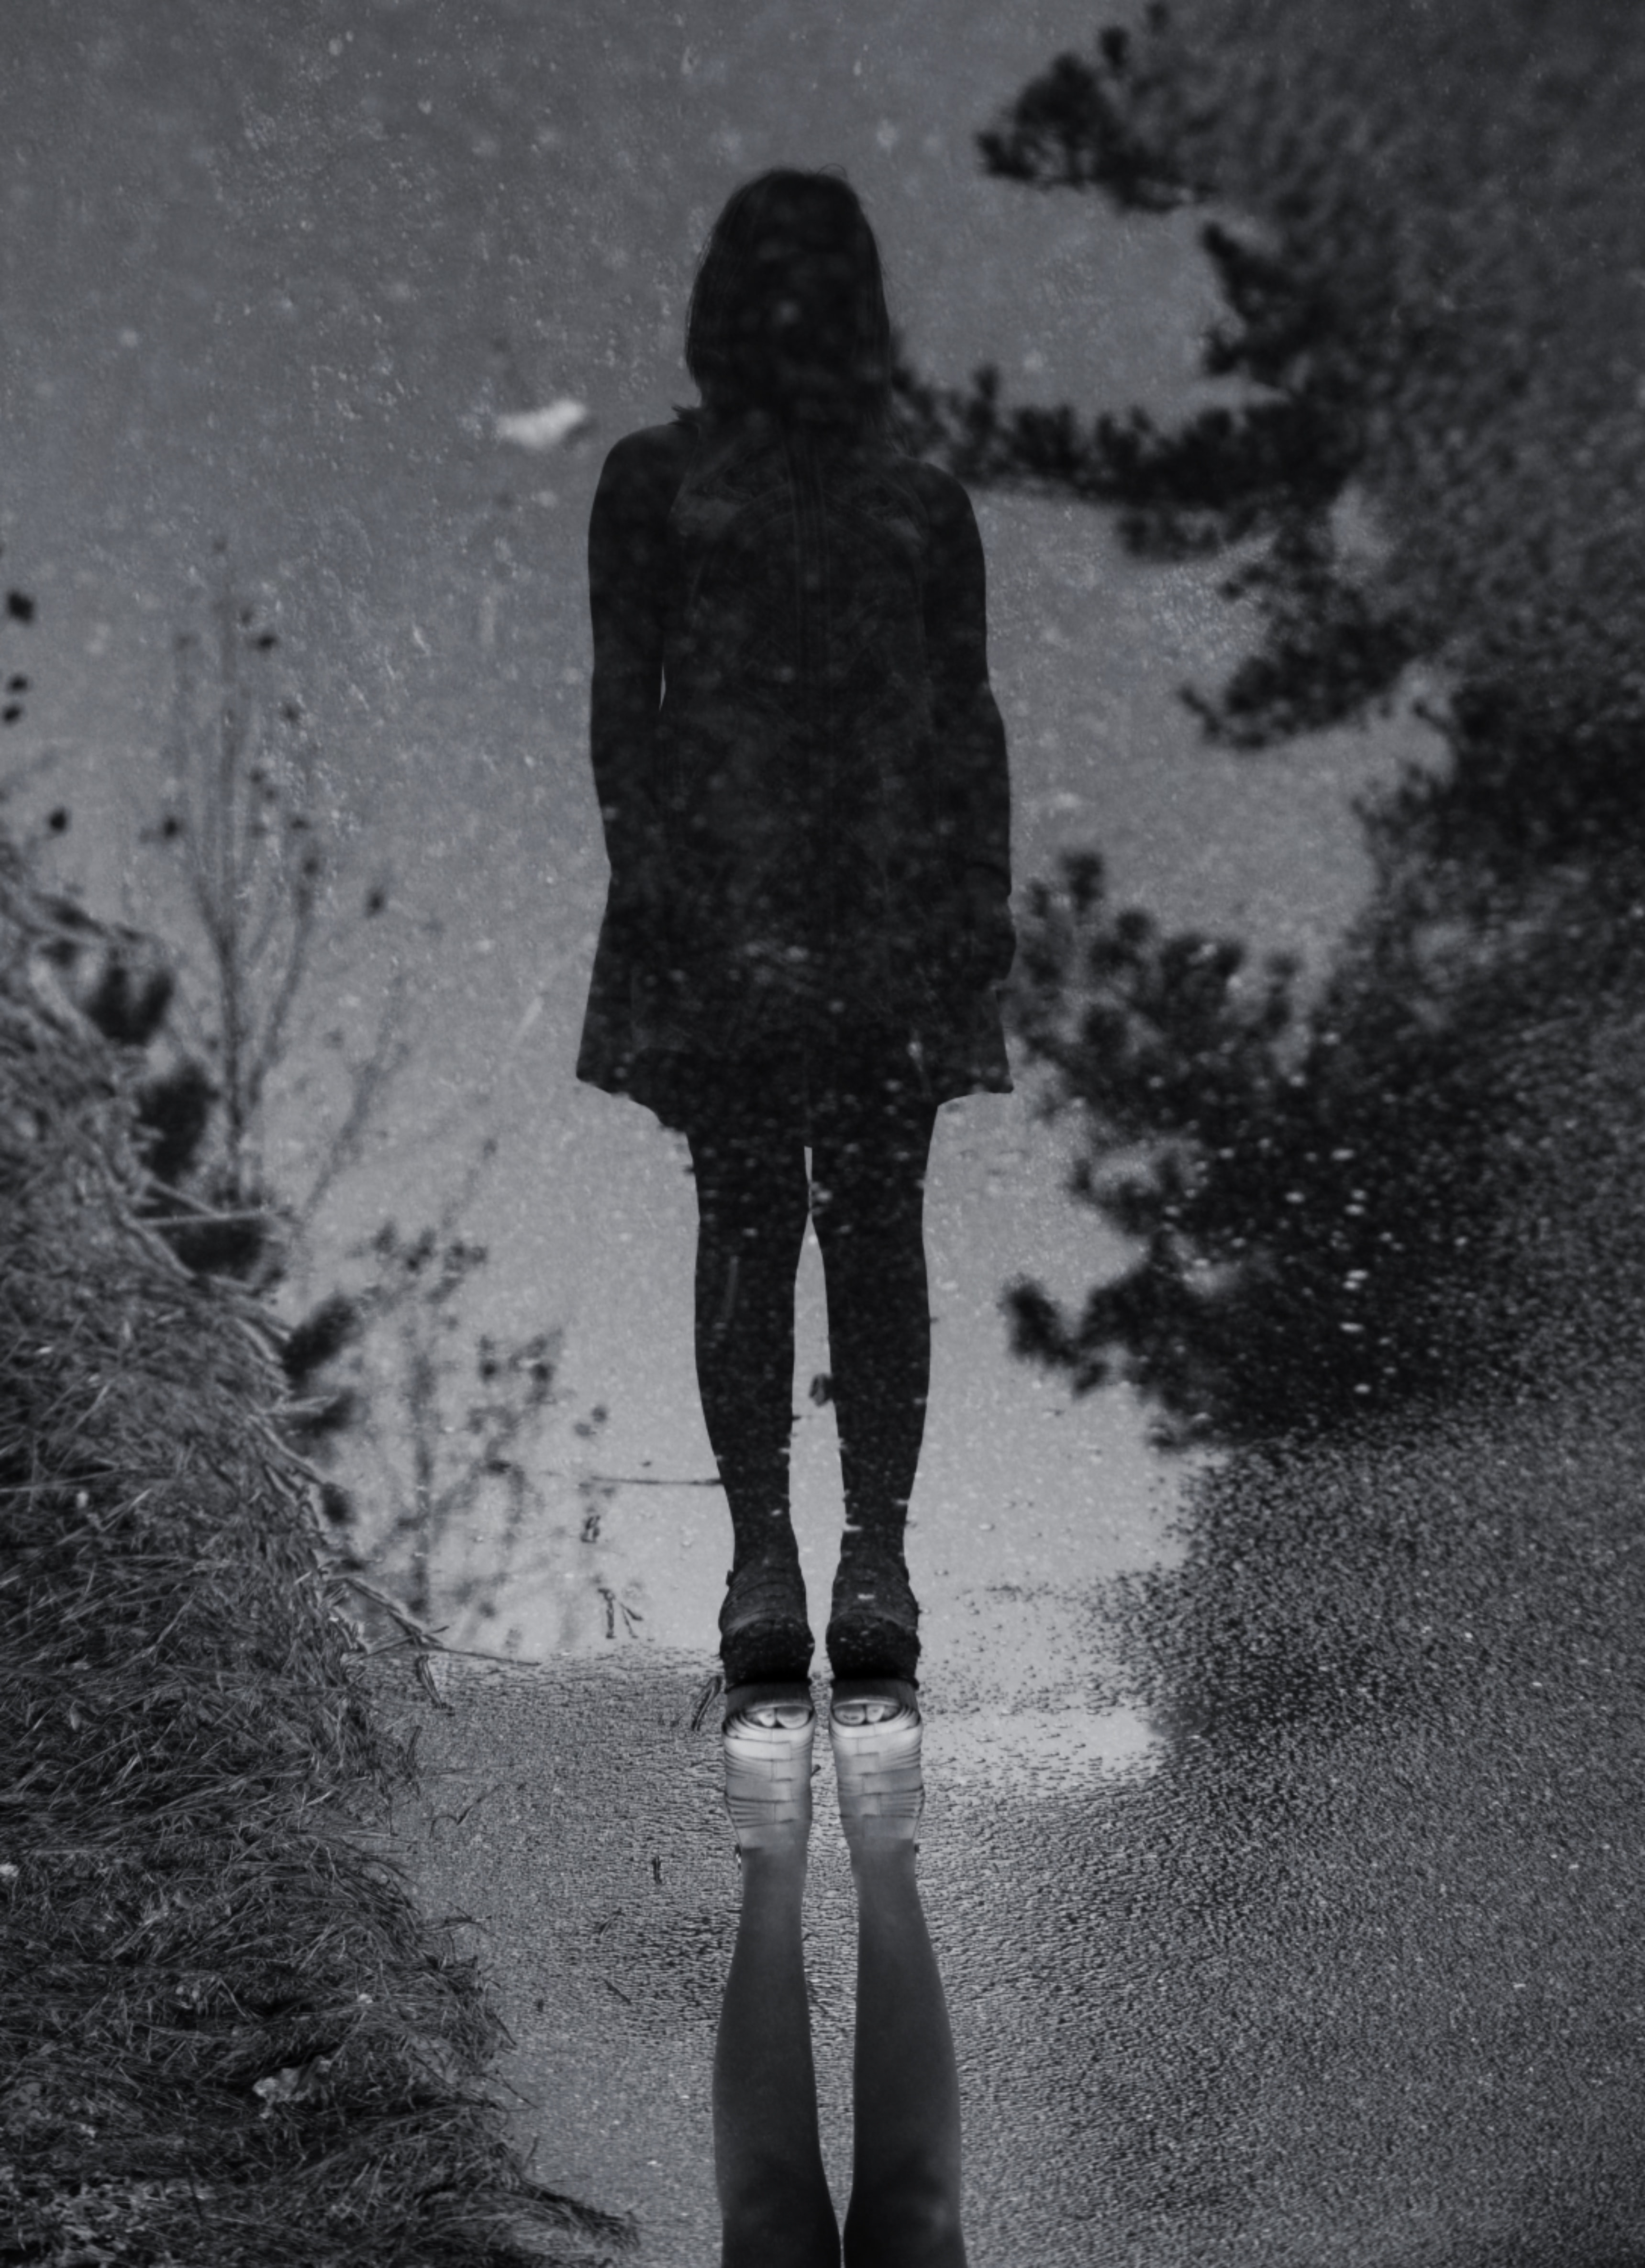 grayscale photo of person standing reflects on water near trees